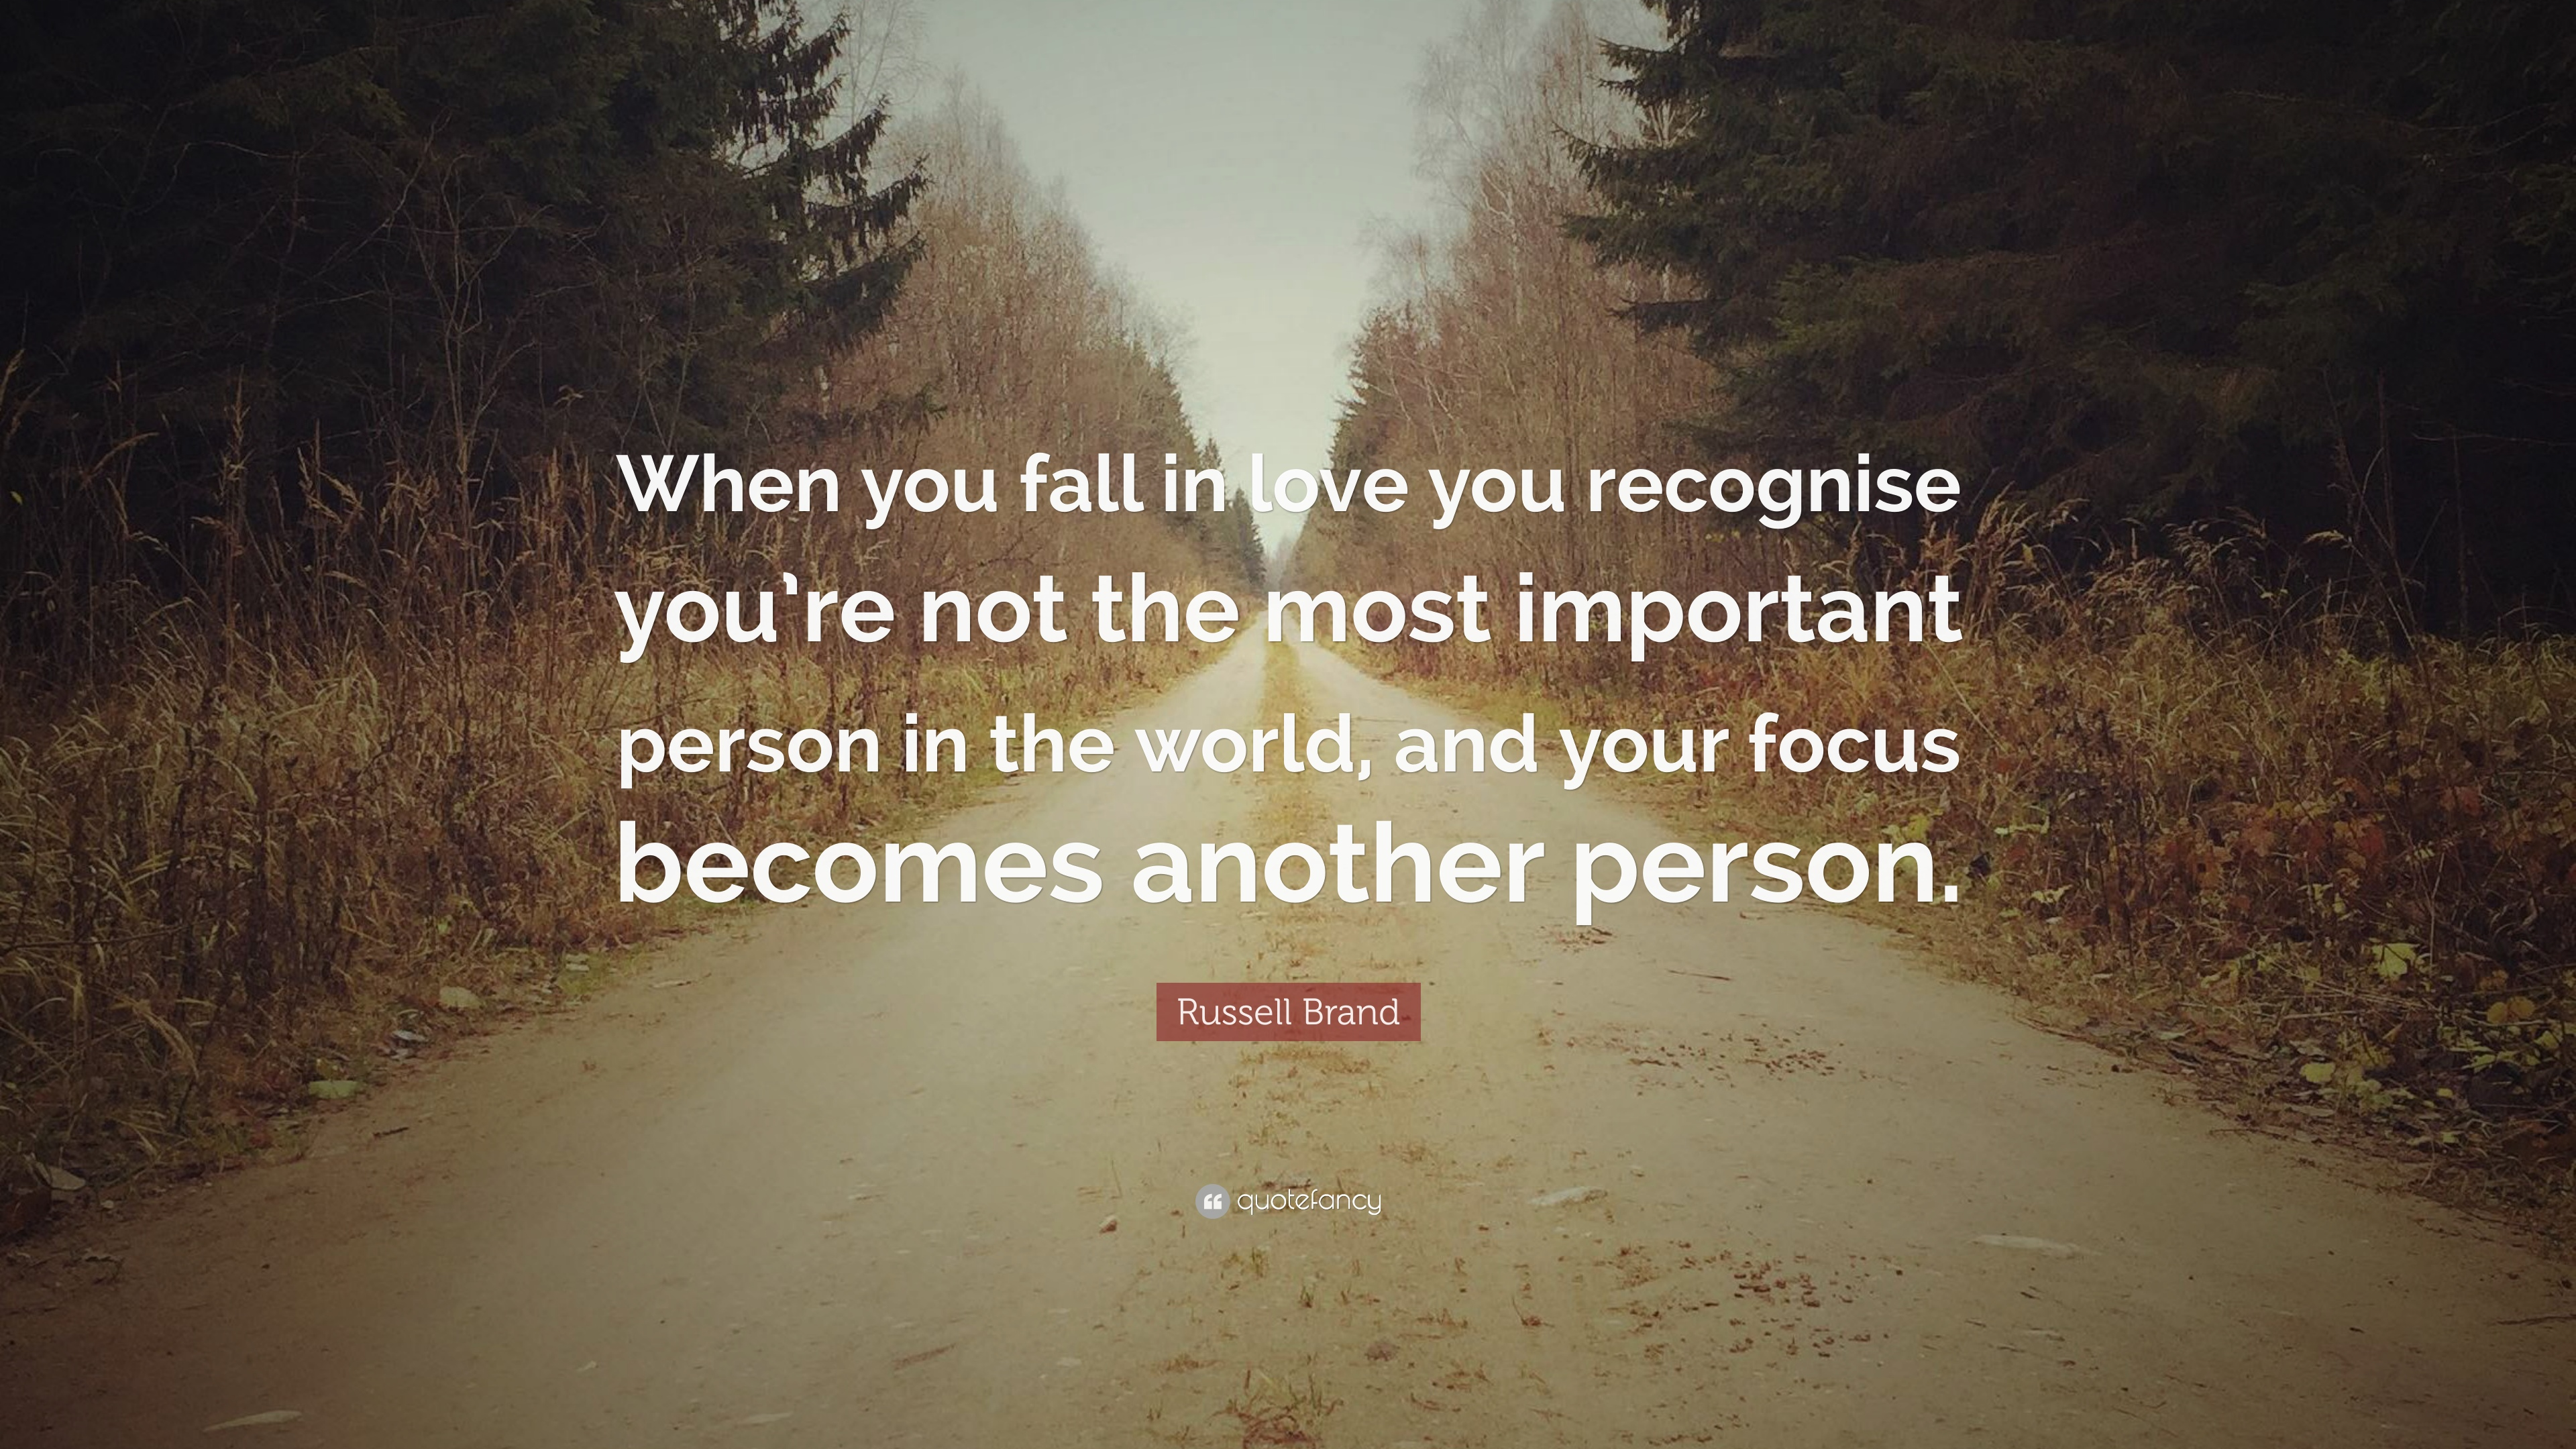 Russell Brand Quote When You Fall In Love You Recognise Youre Not